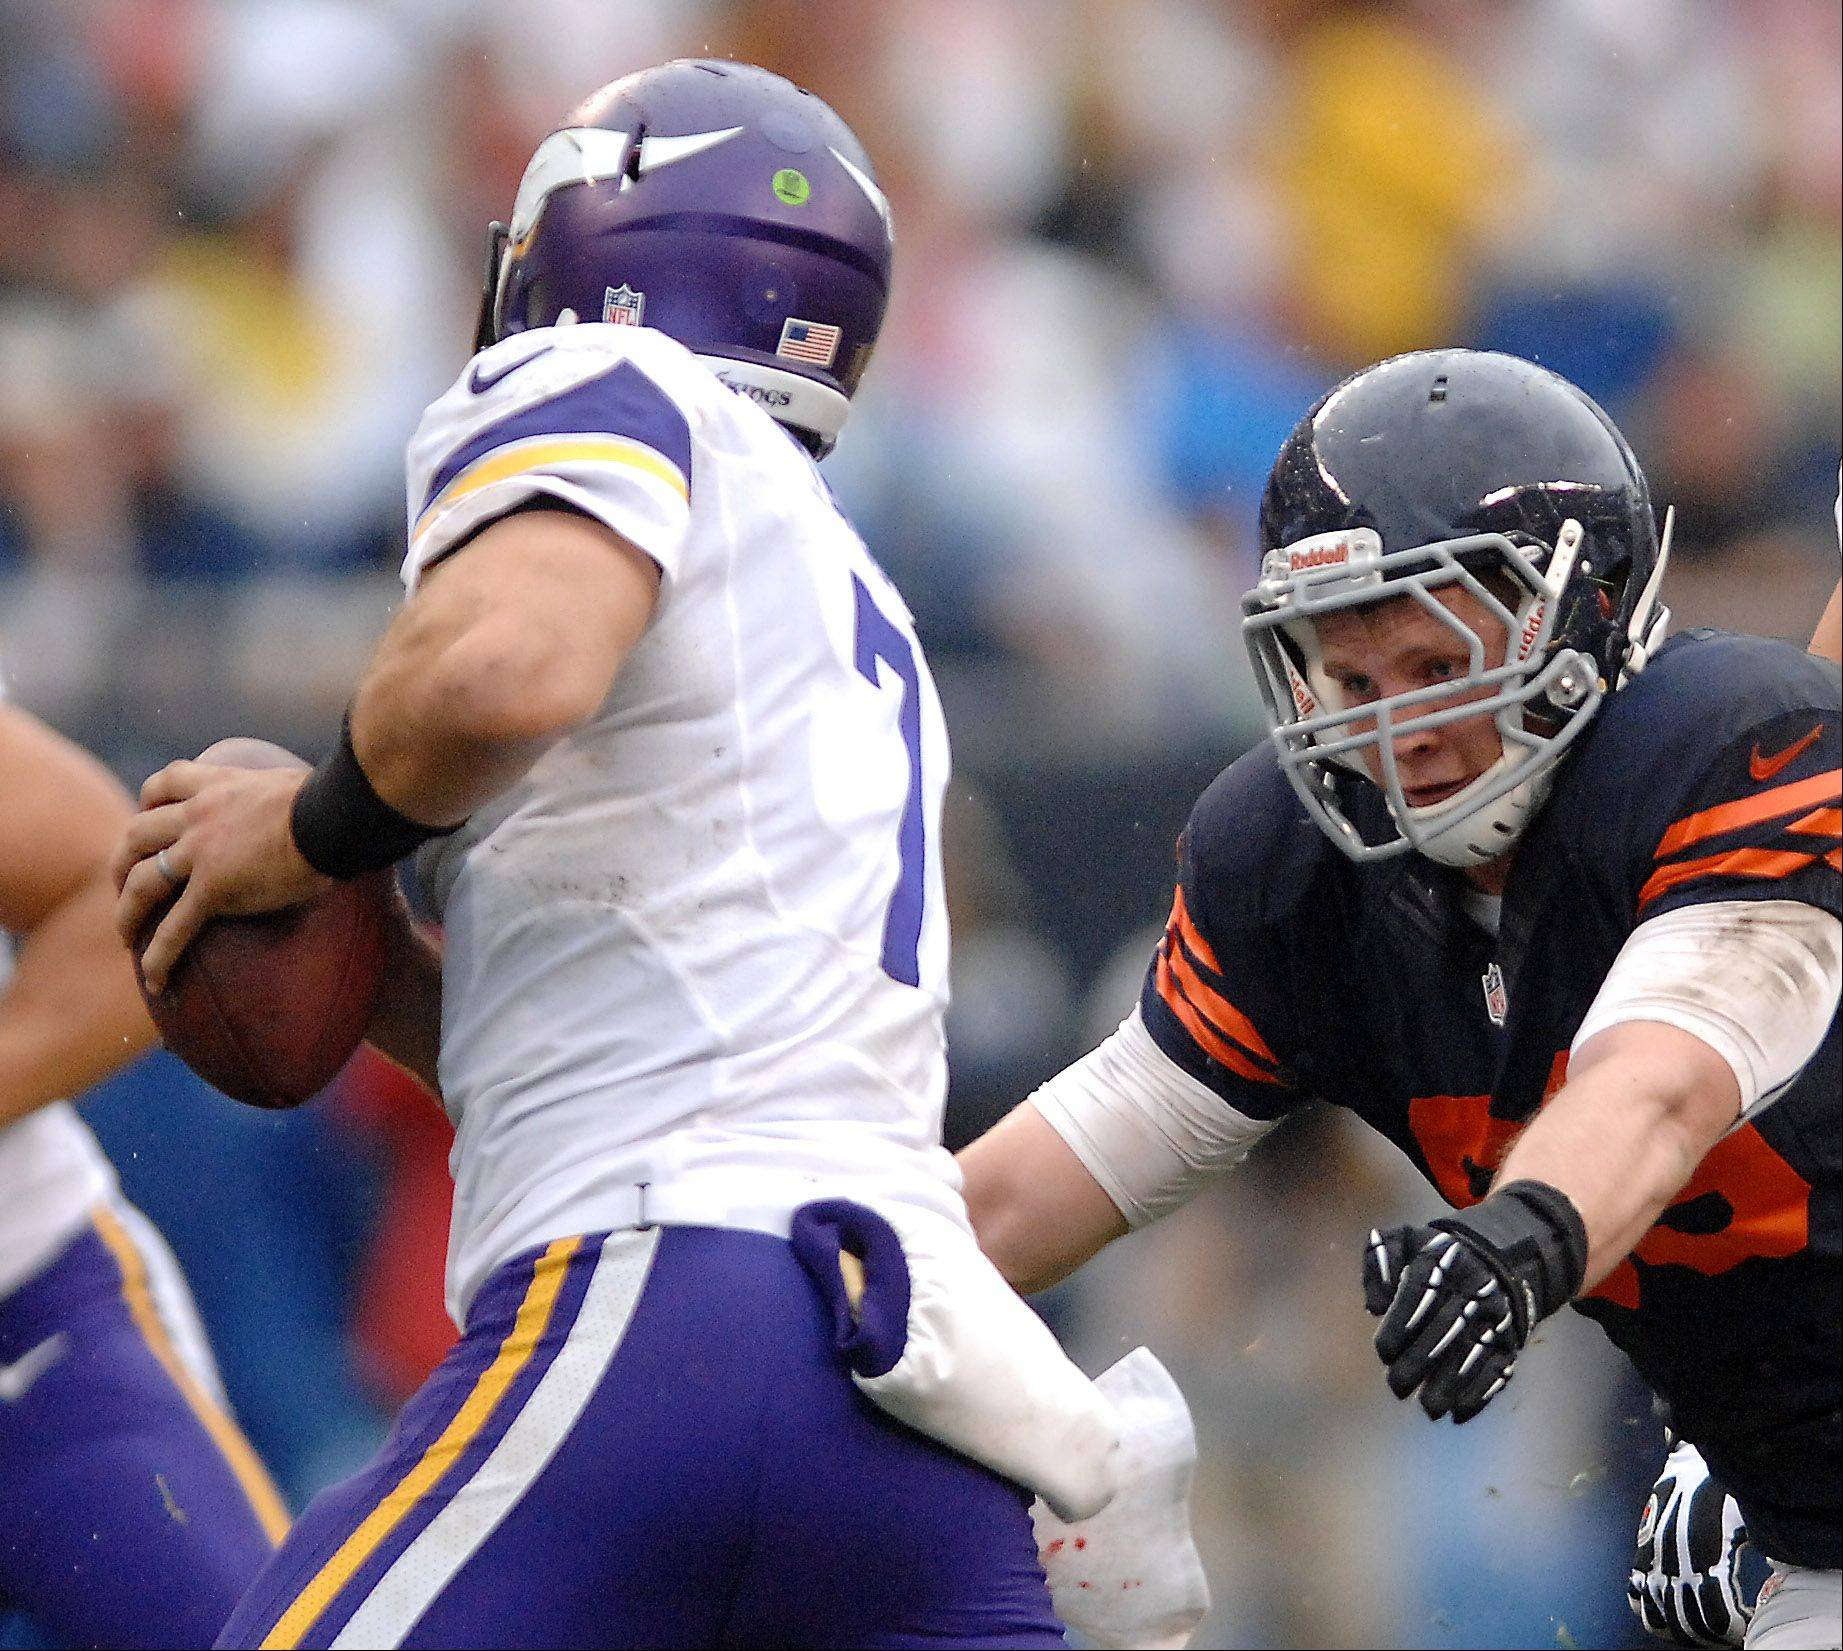 Chicago Bears defensive end Shea McClellin (99) pressures Minnesota Vikings quarterback Christian Ponder (7) during Sunday's game at Soldier Field in Chicago.